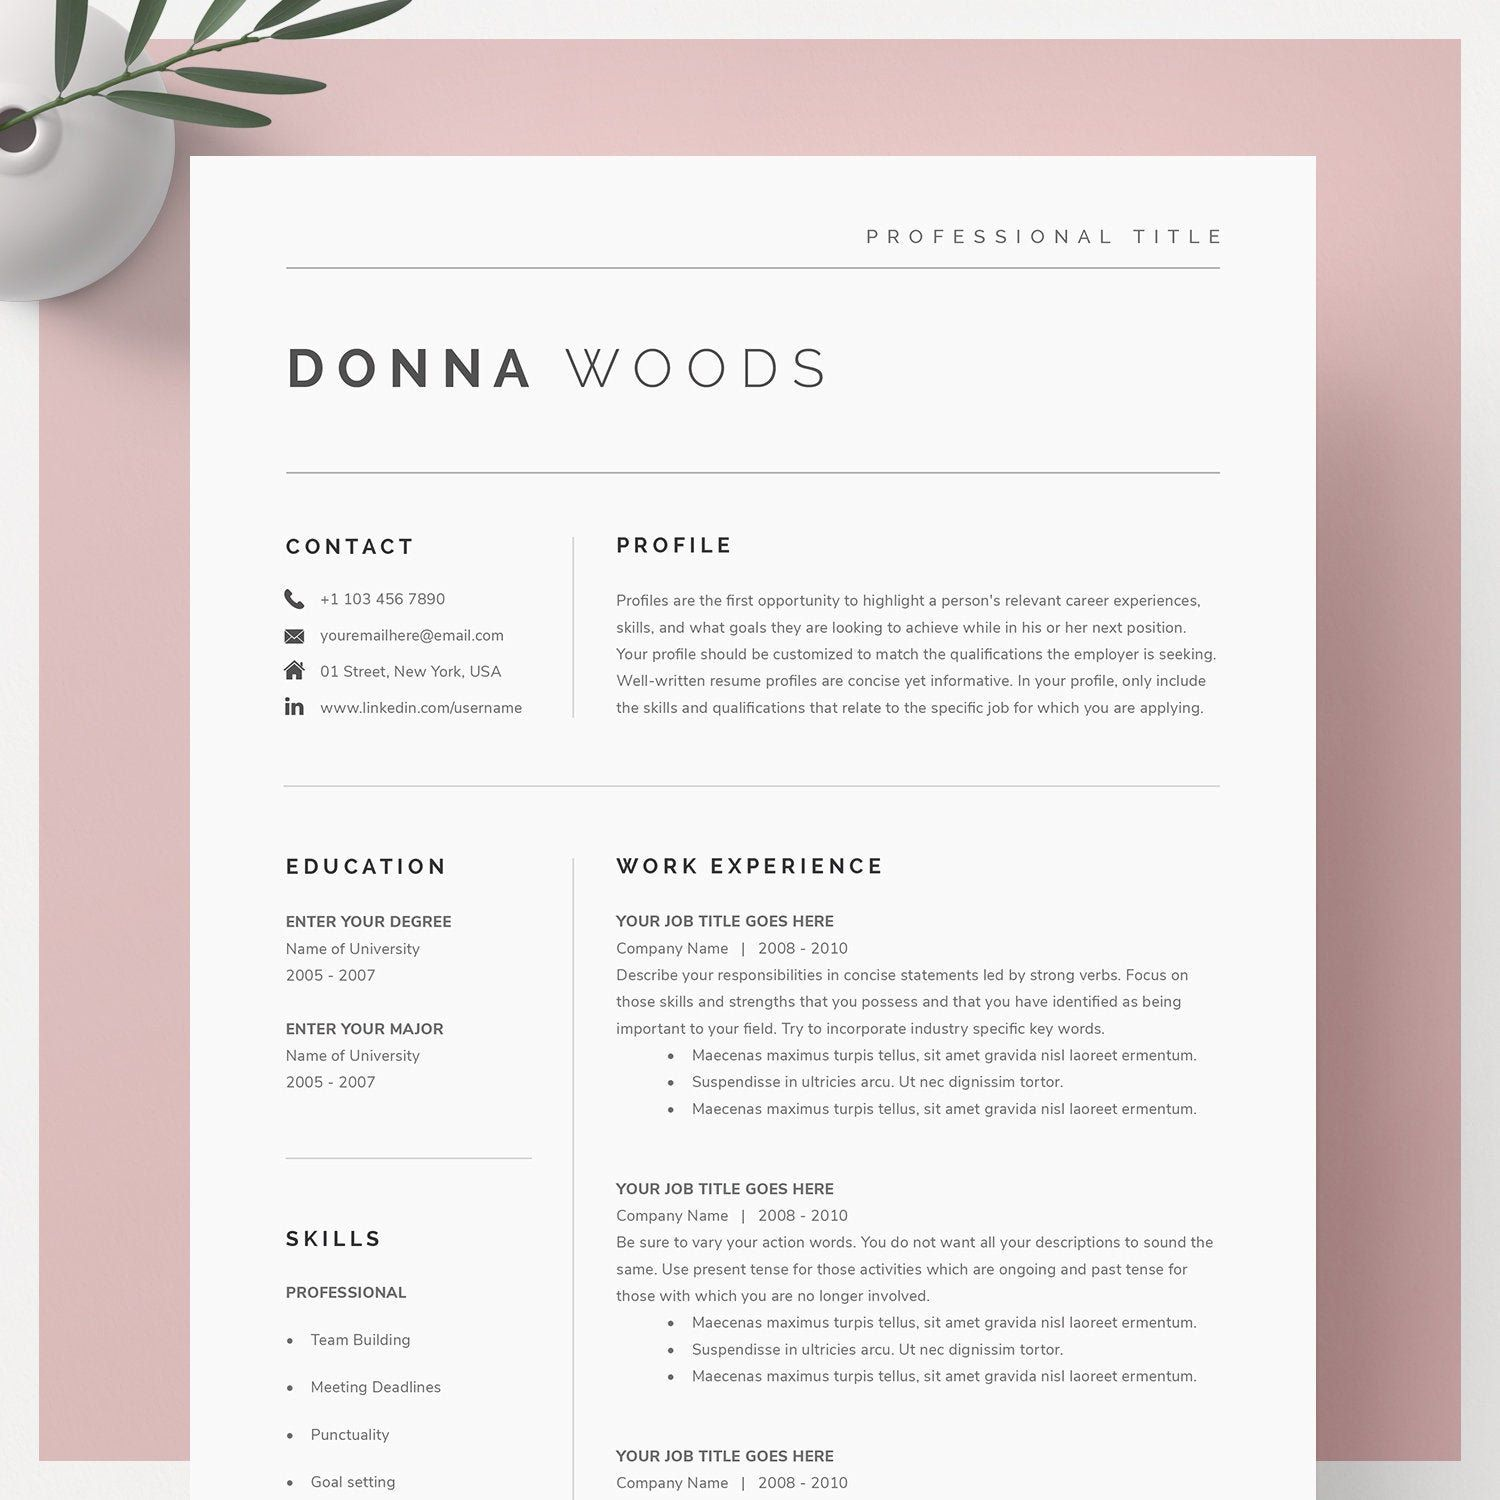 Resume in word Template - 24+ Free Word, PDF Documents Download | Free & Premium Templates